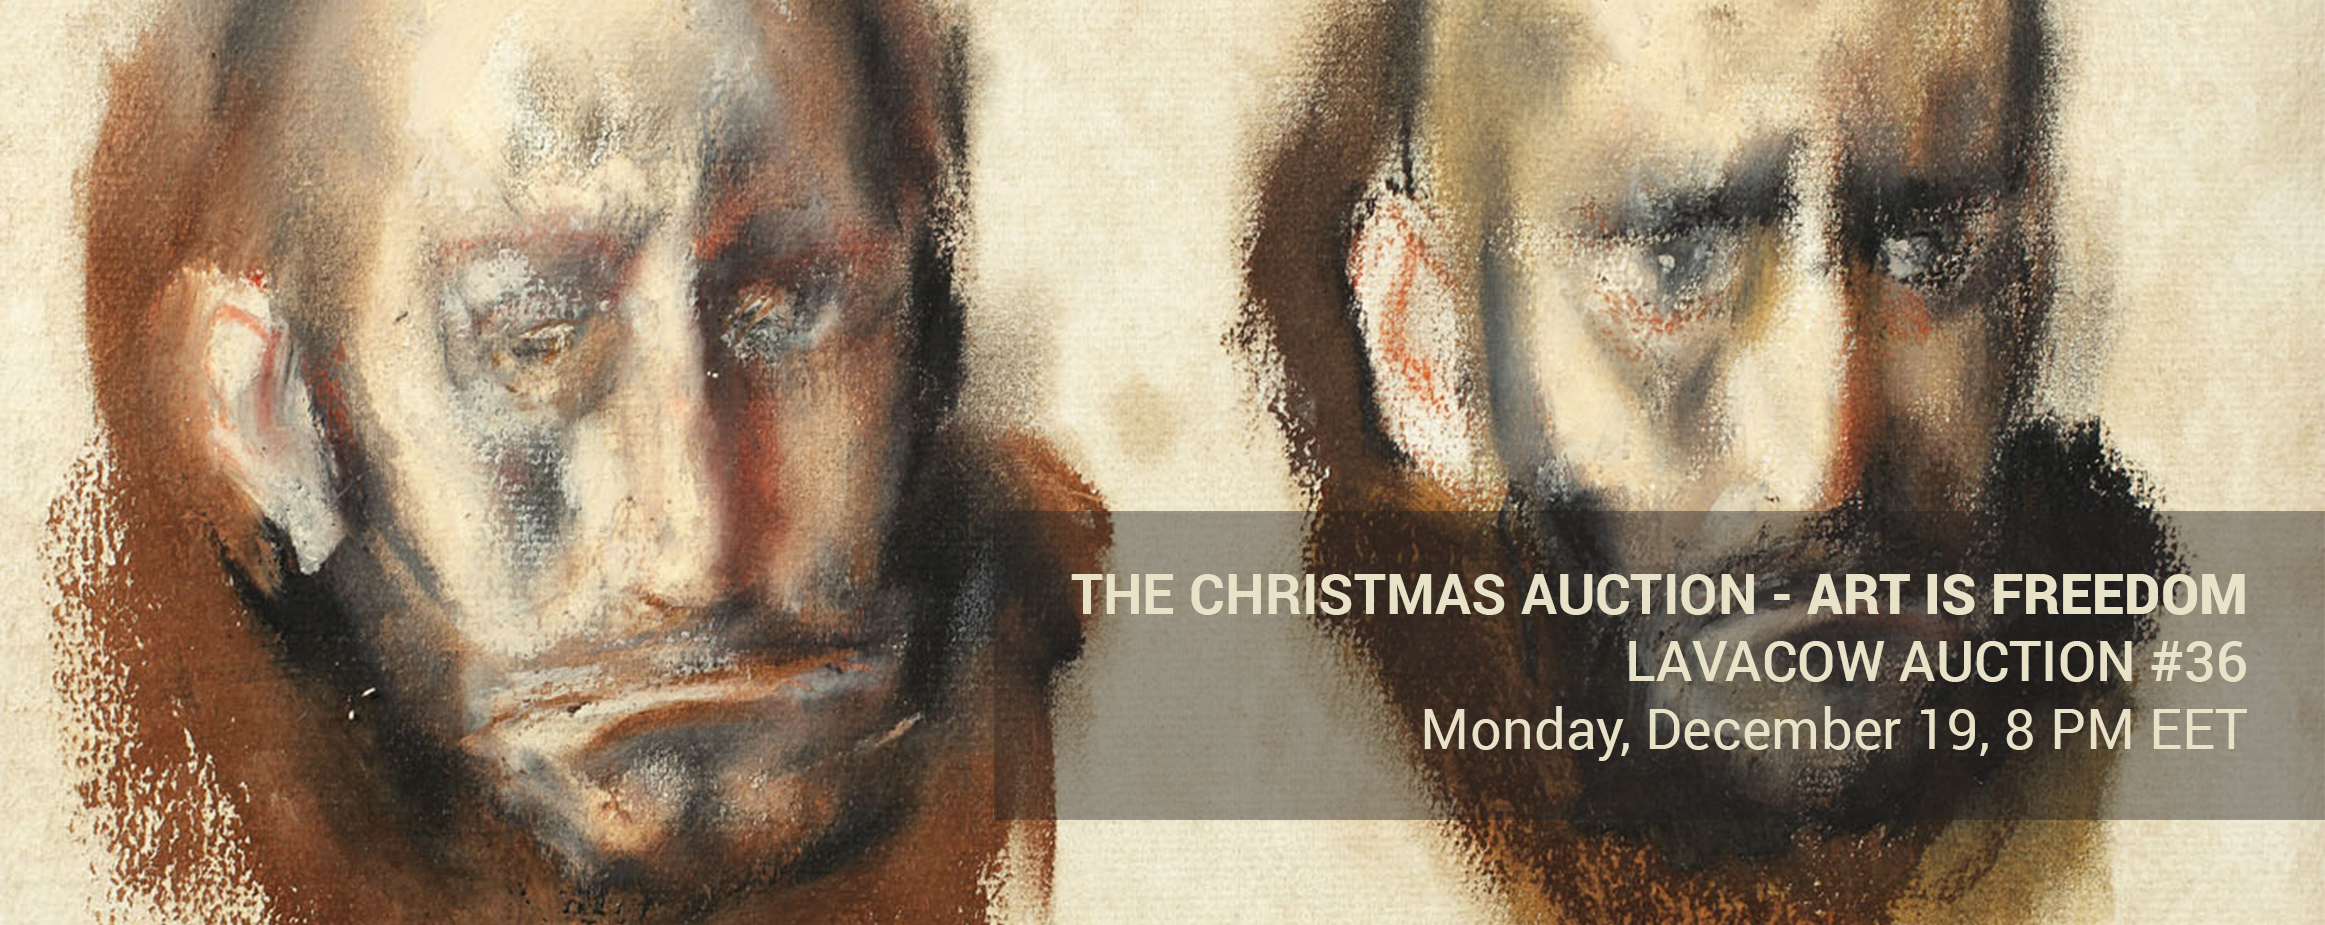 The Christmas Auction, #36